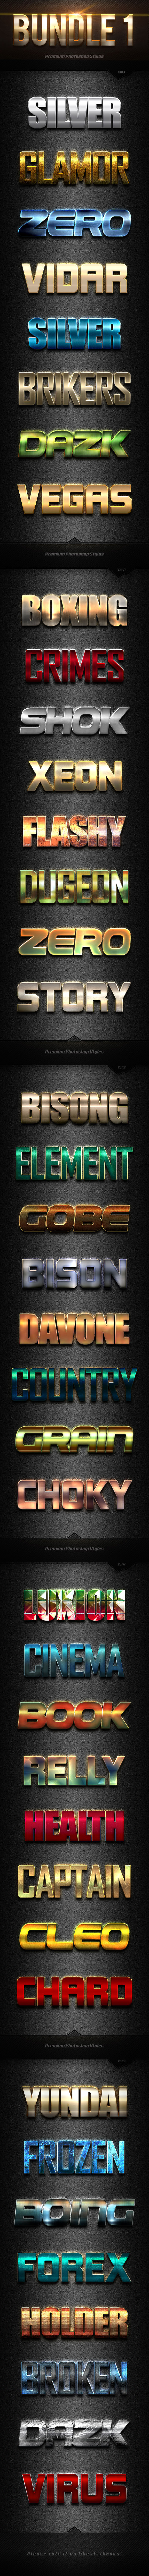 40 Photoshop Text Effects Bundles 1 - Text Effects Styles